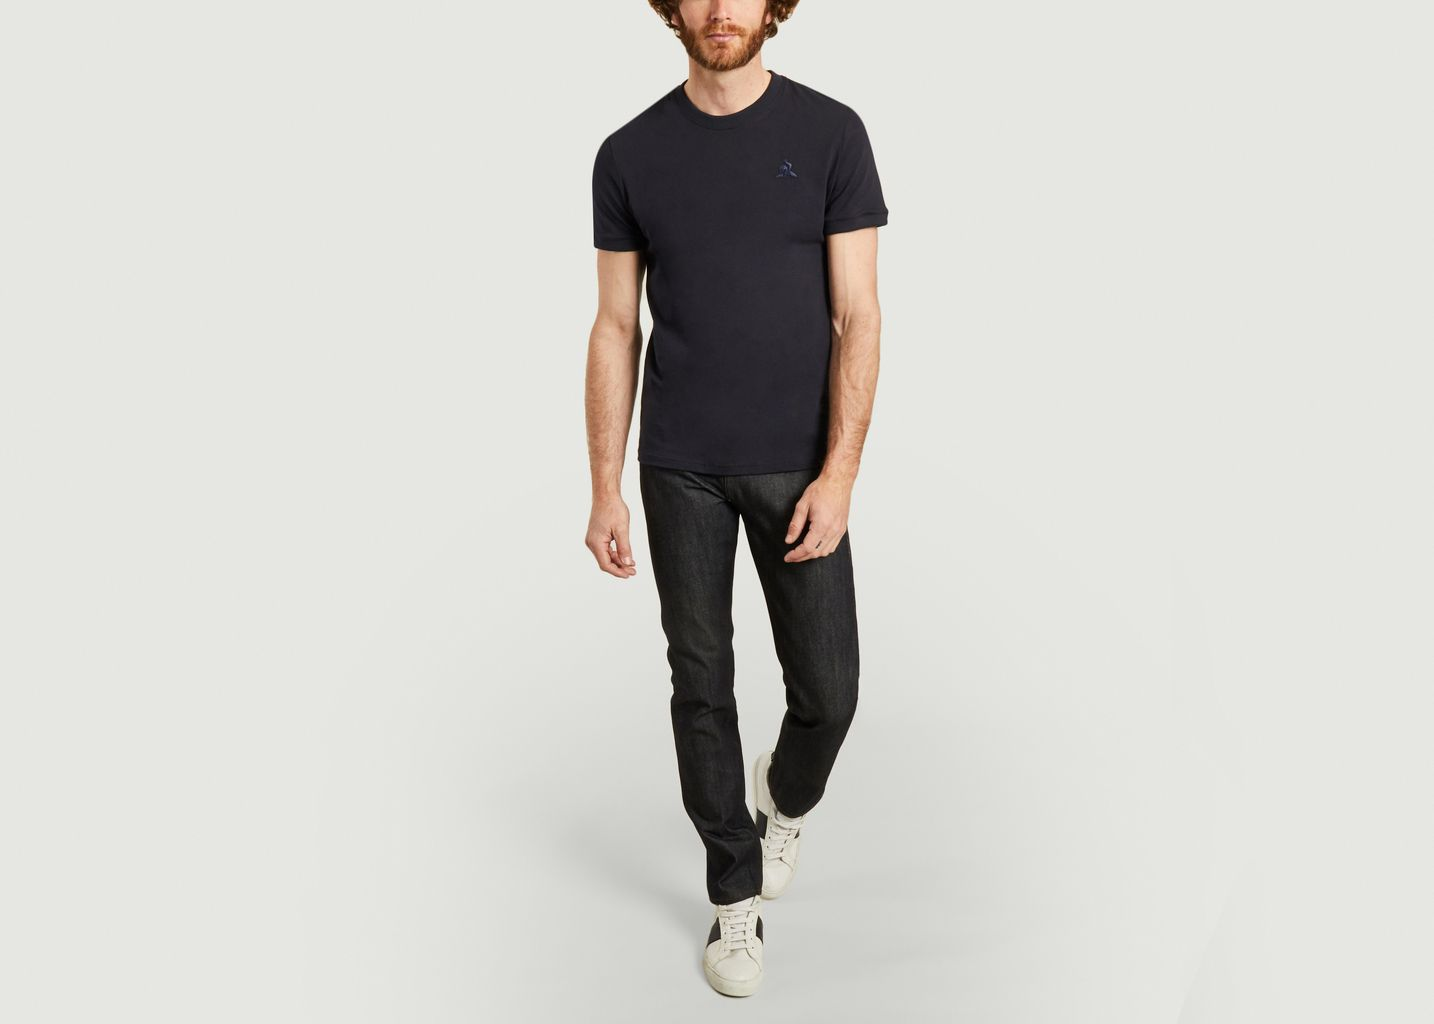 Jean UB101 - The Unbranded Brand